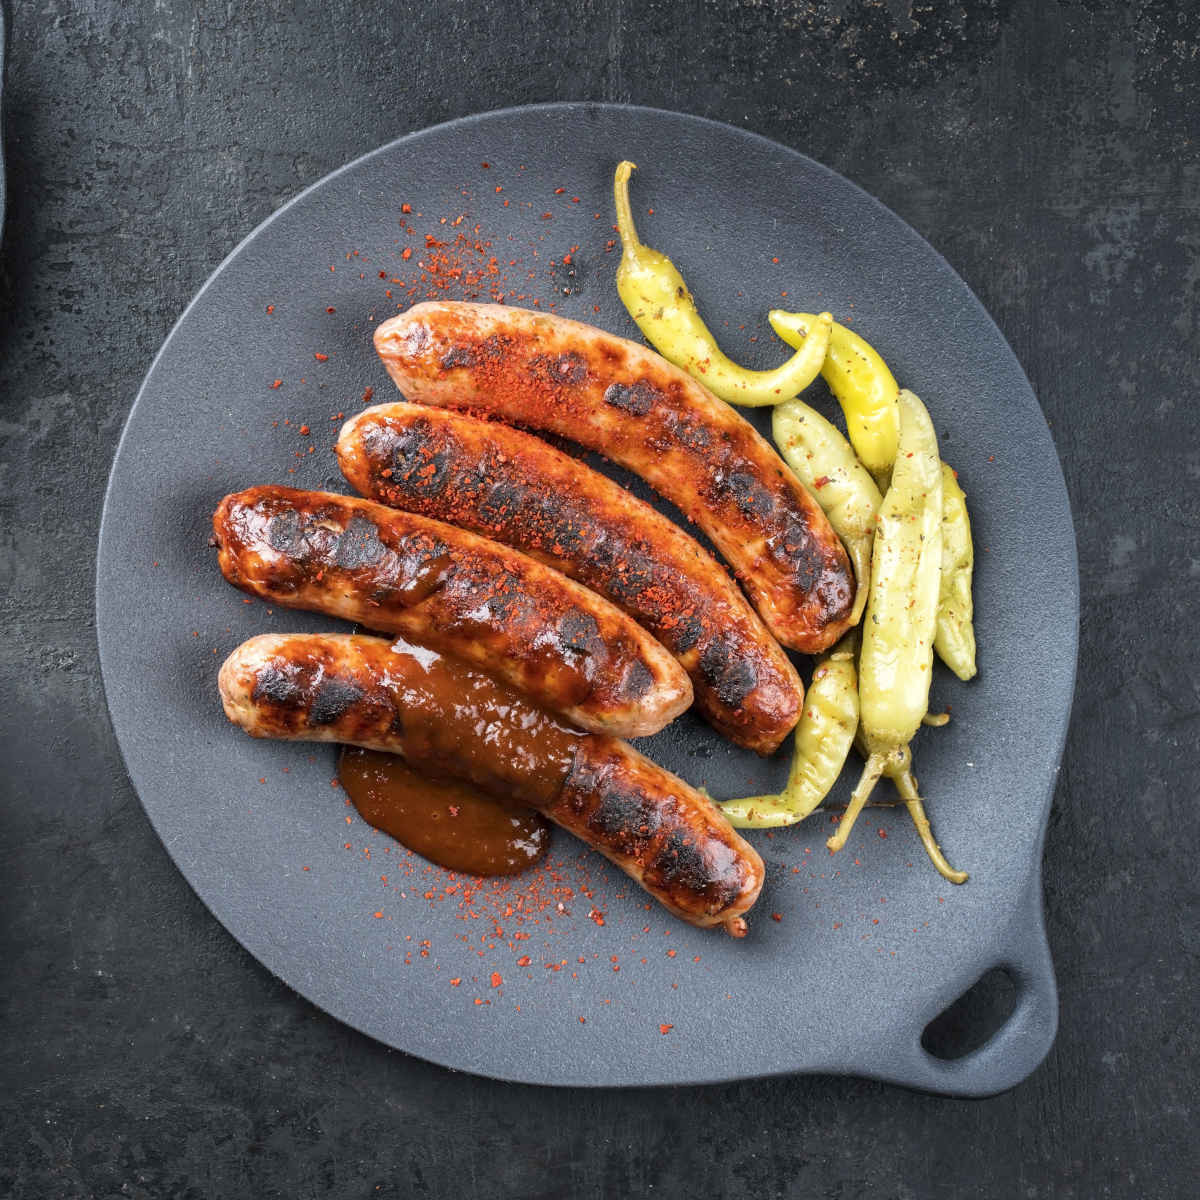 Get outside and grill, and don't sweat the sides- we've got you